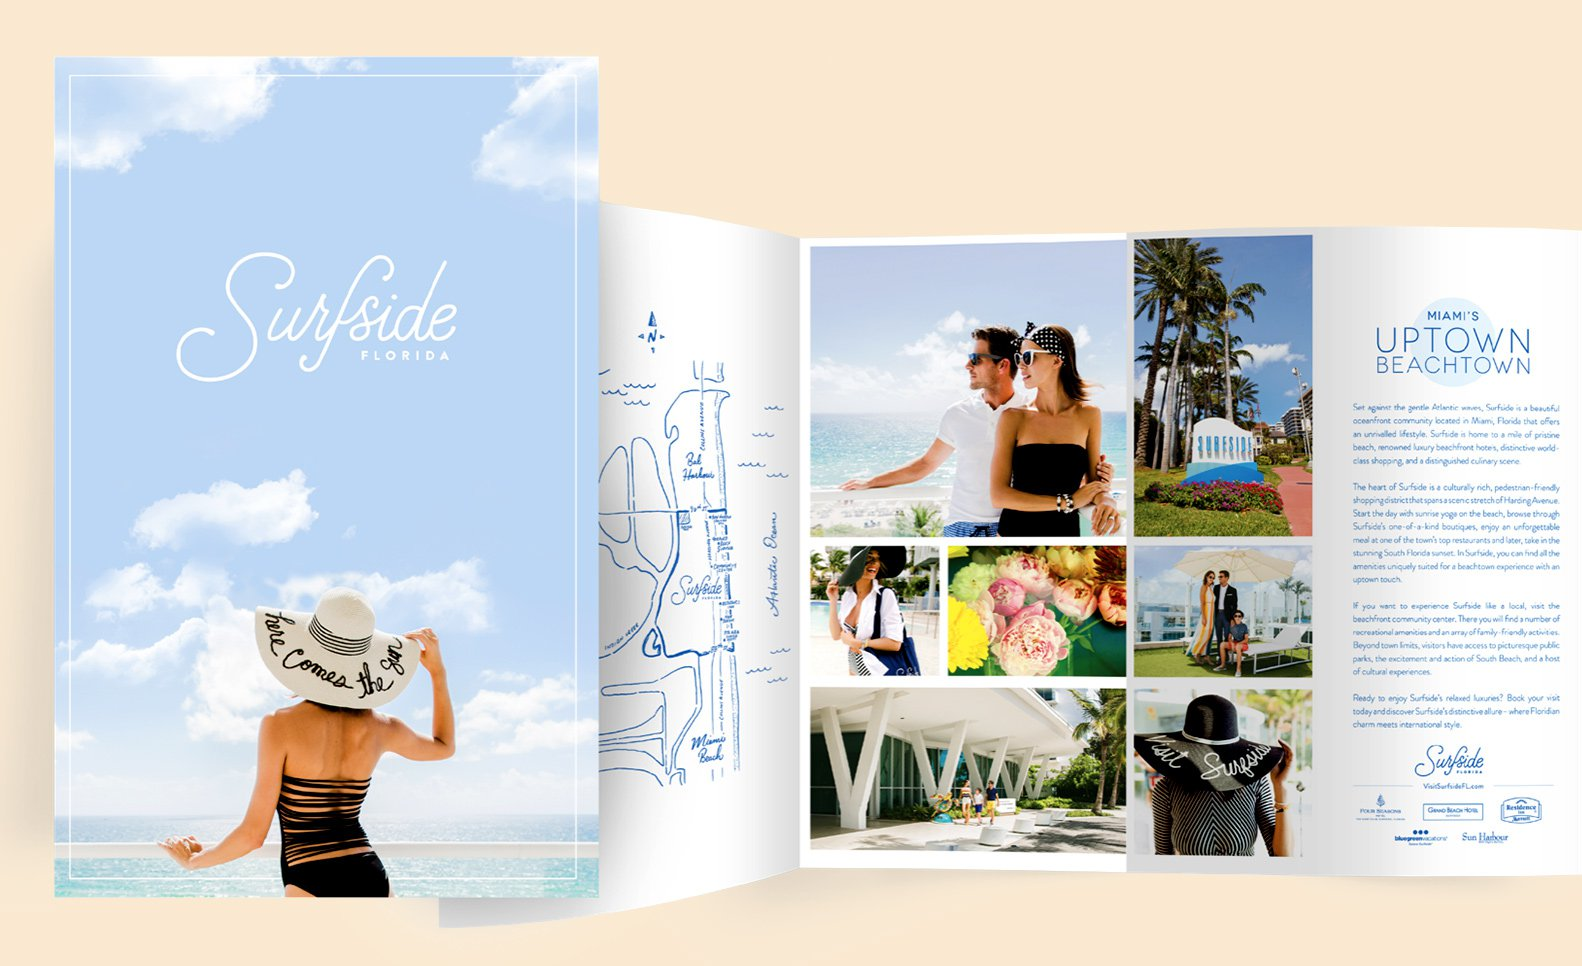 Jacober Creative Identity and Campaign for the Town of Surfside Florida - Photo of custom printed brochure